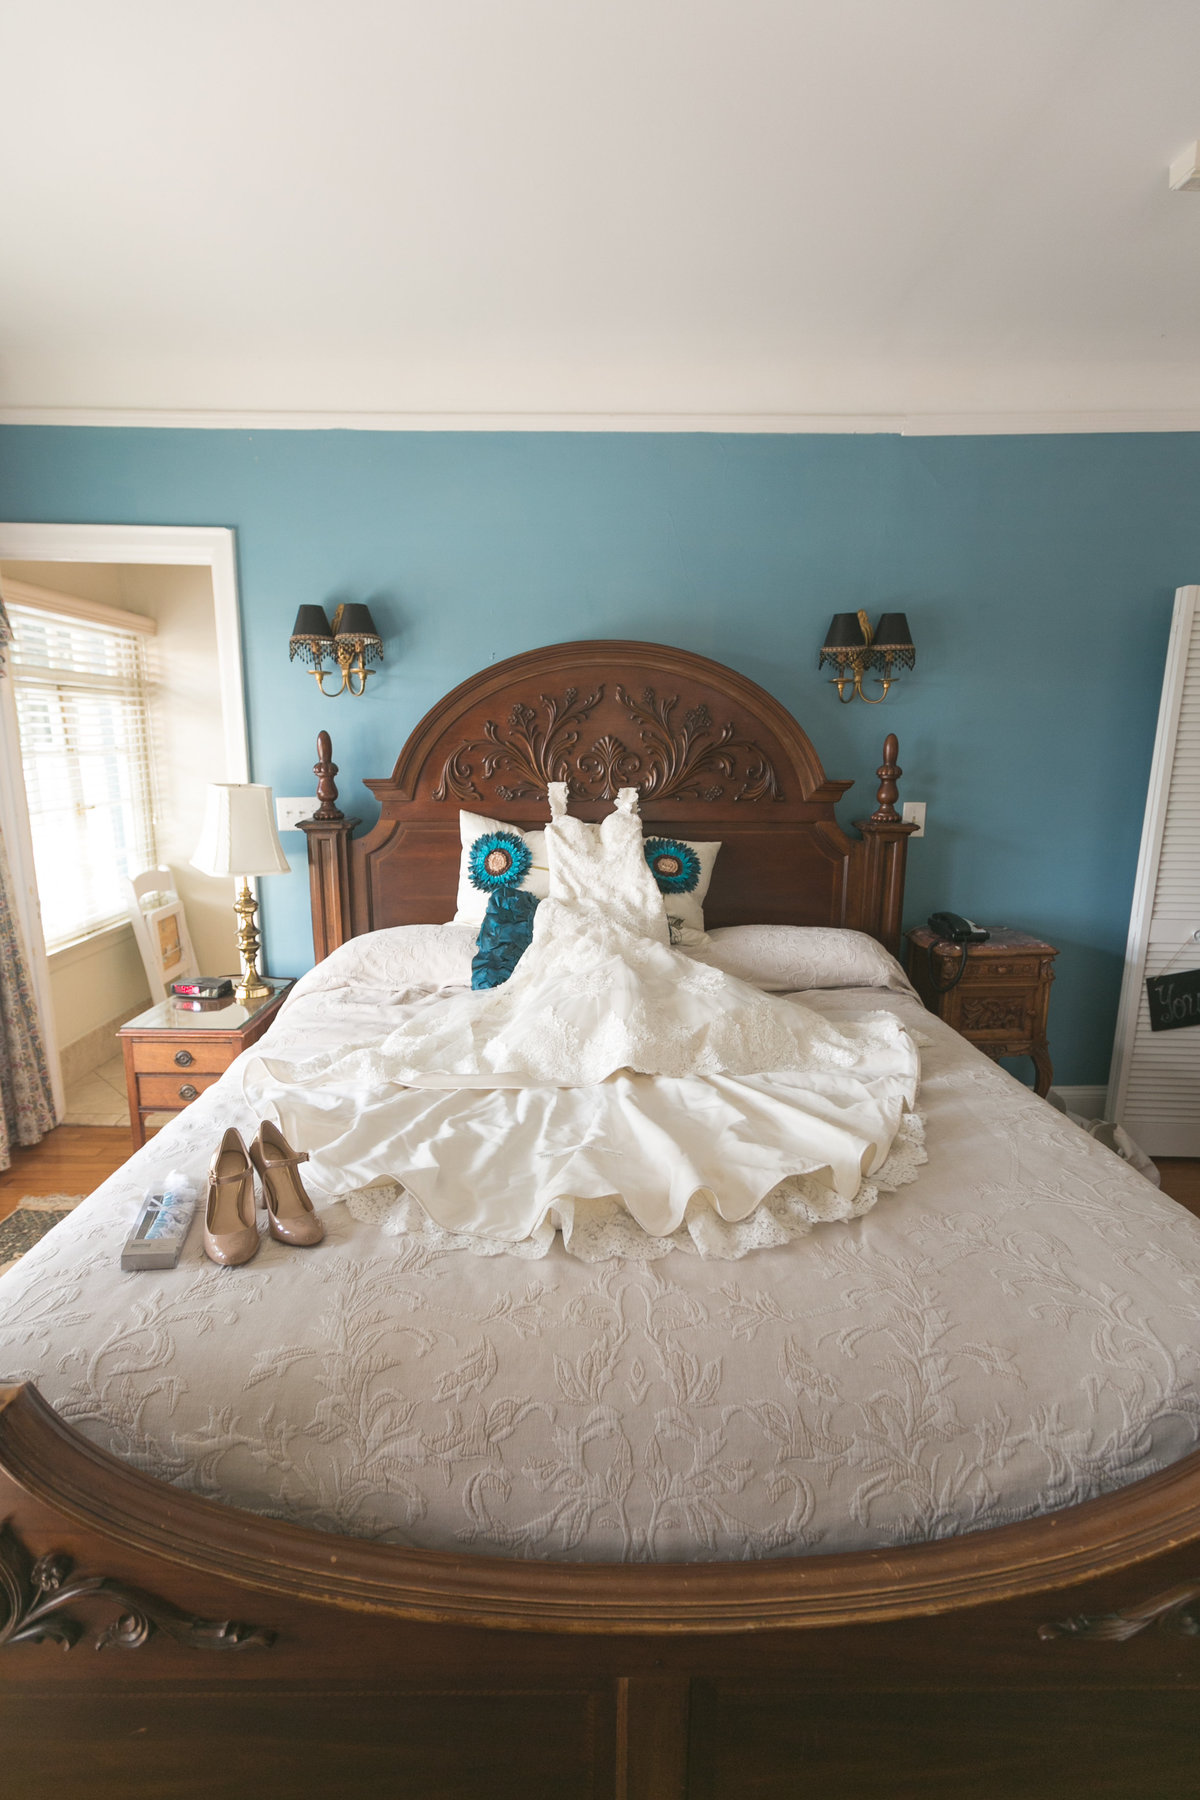 Dress and details on a bed at Club Continental Orange park